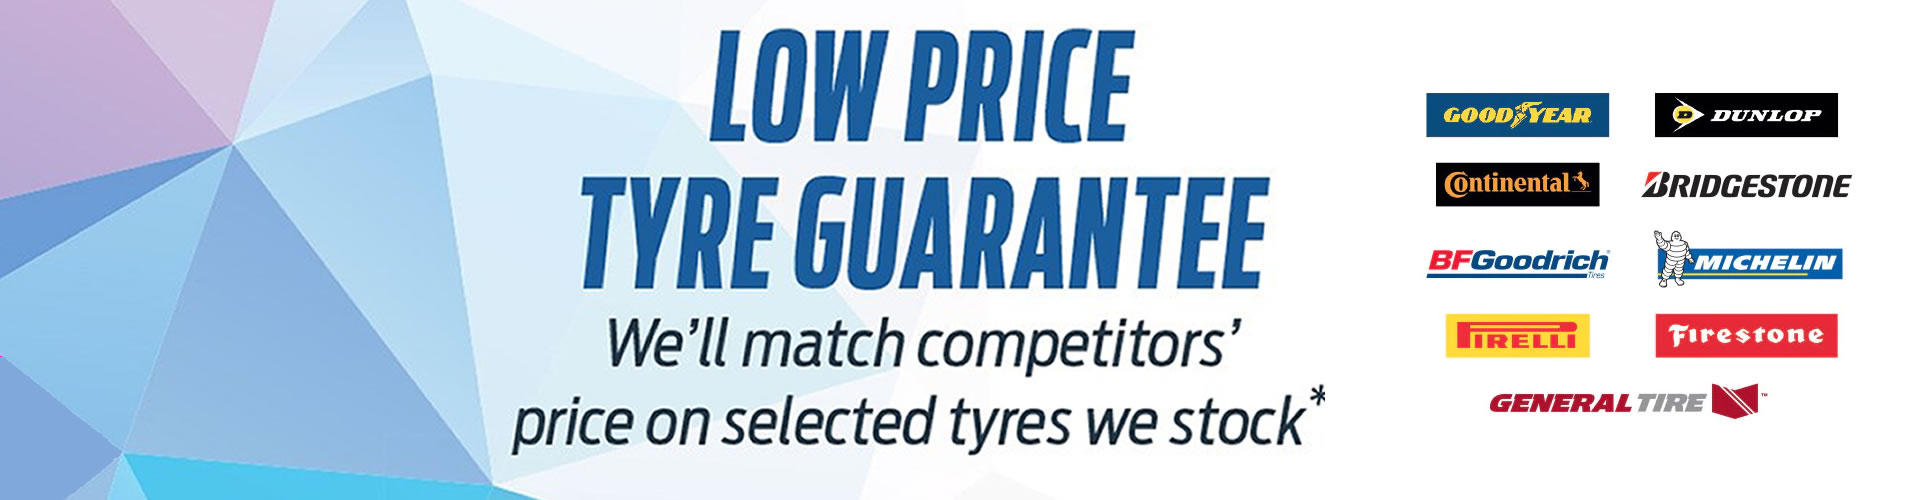 We Know Performance - Low Tyre Price Page